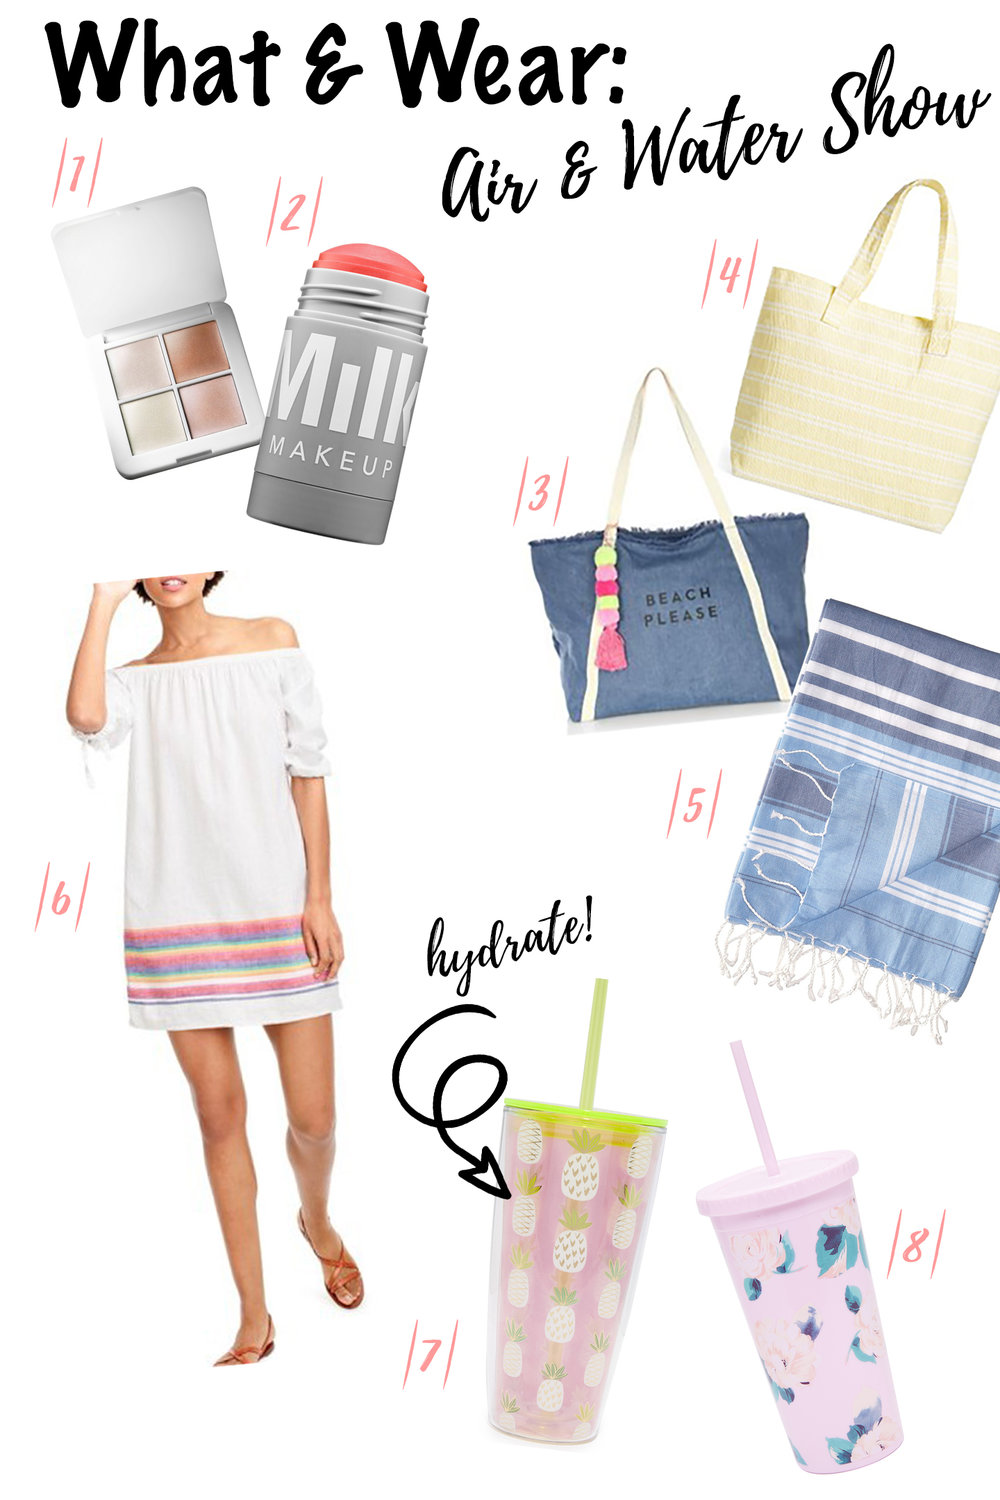 Air_and_Water_Shopping